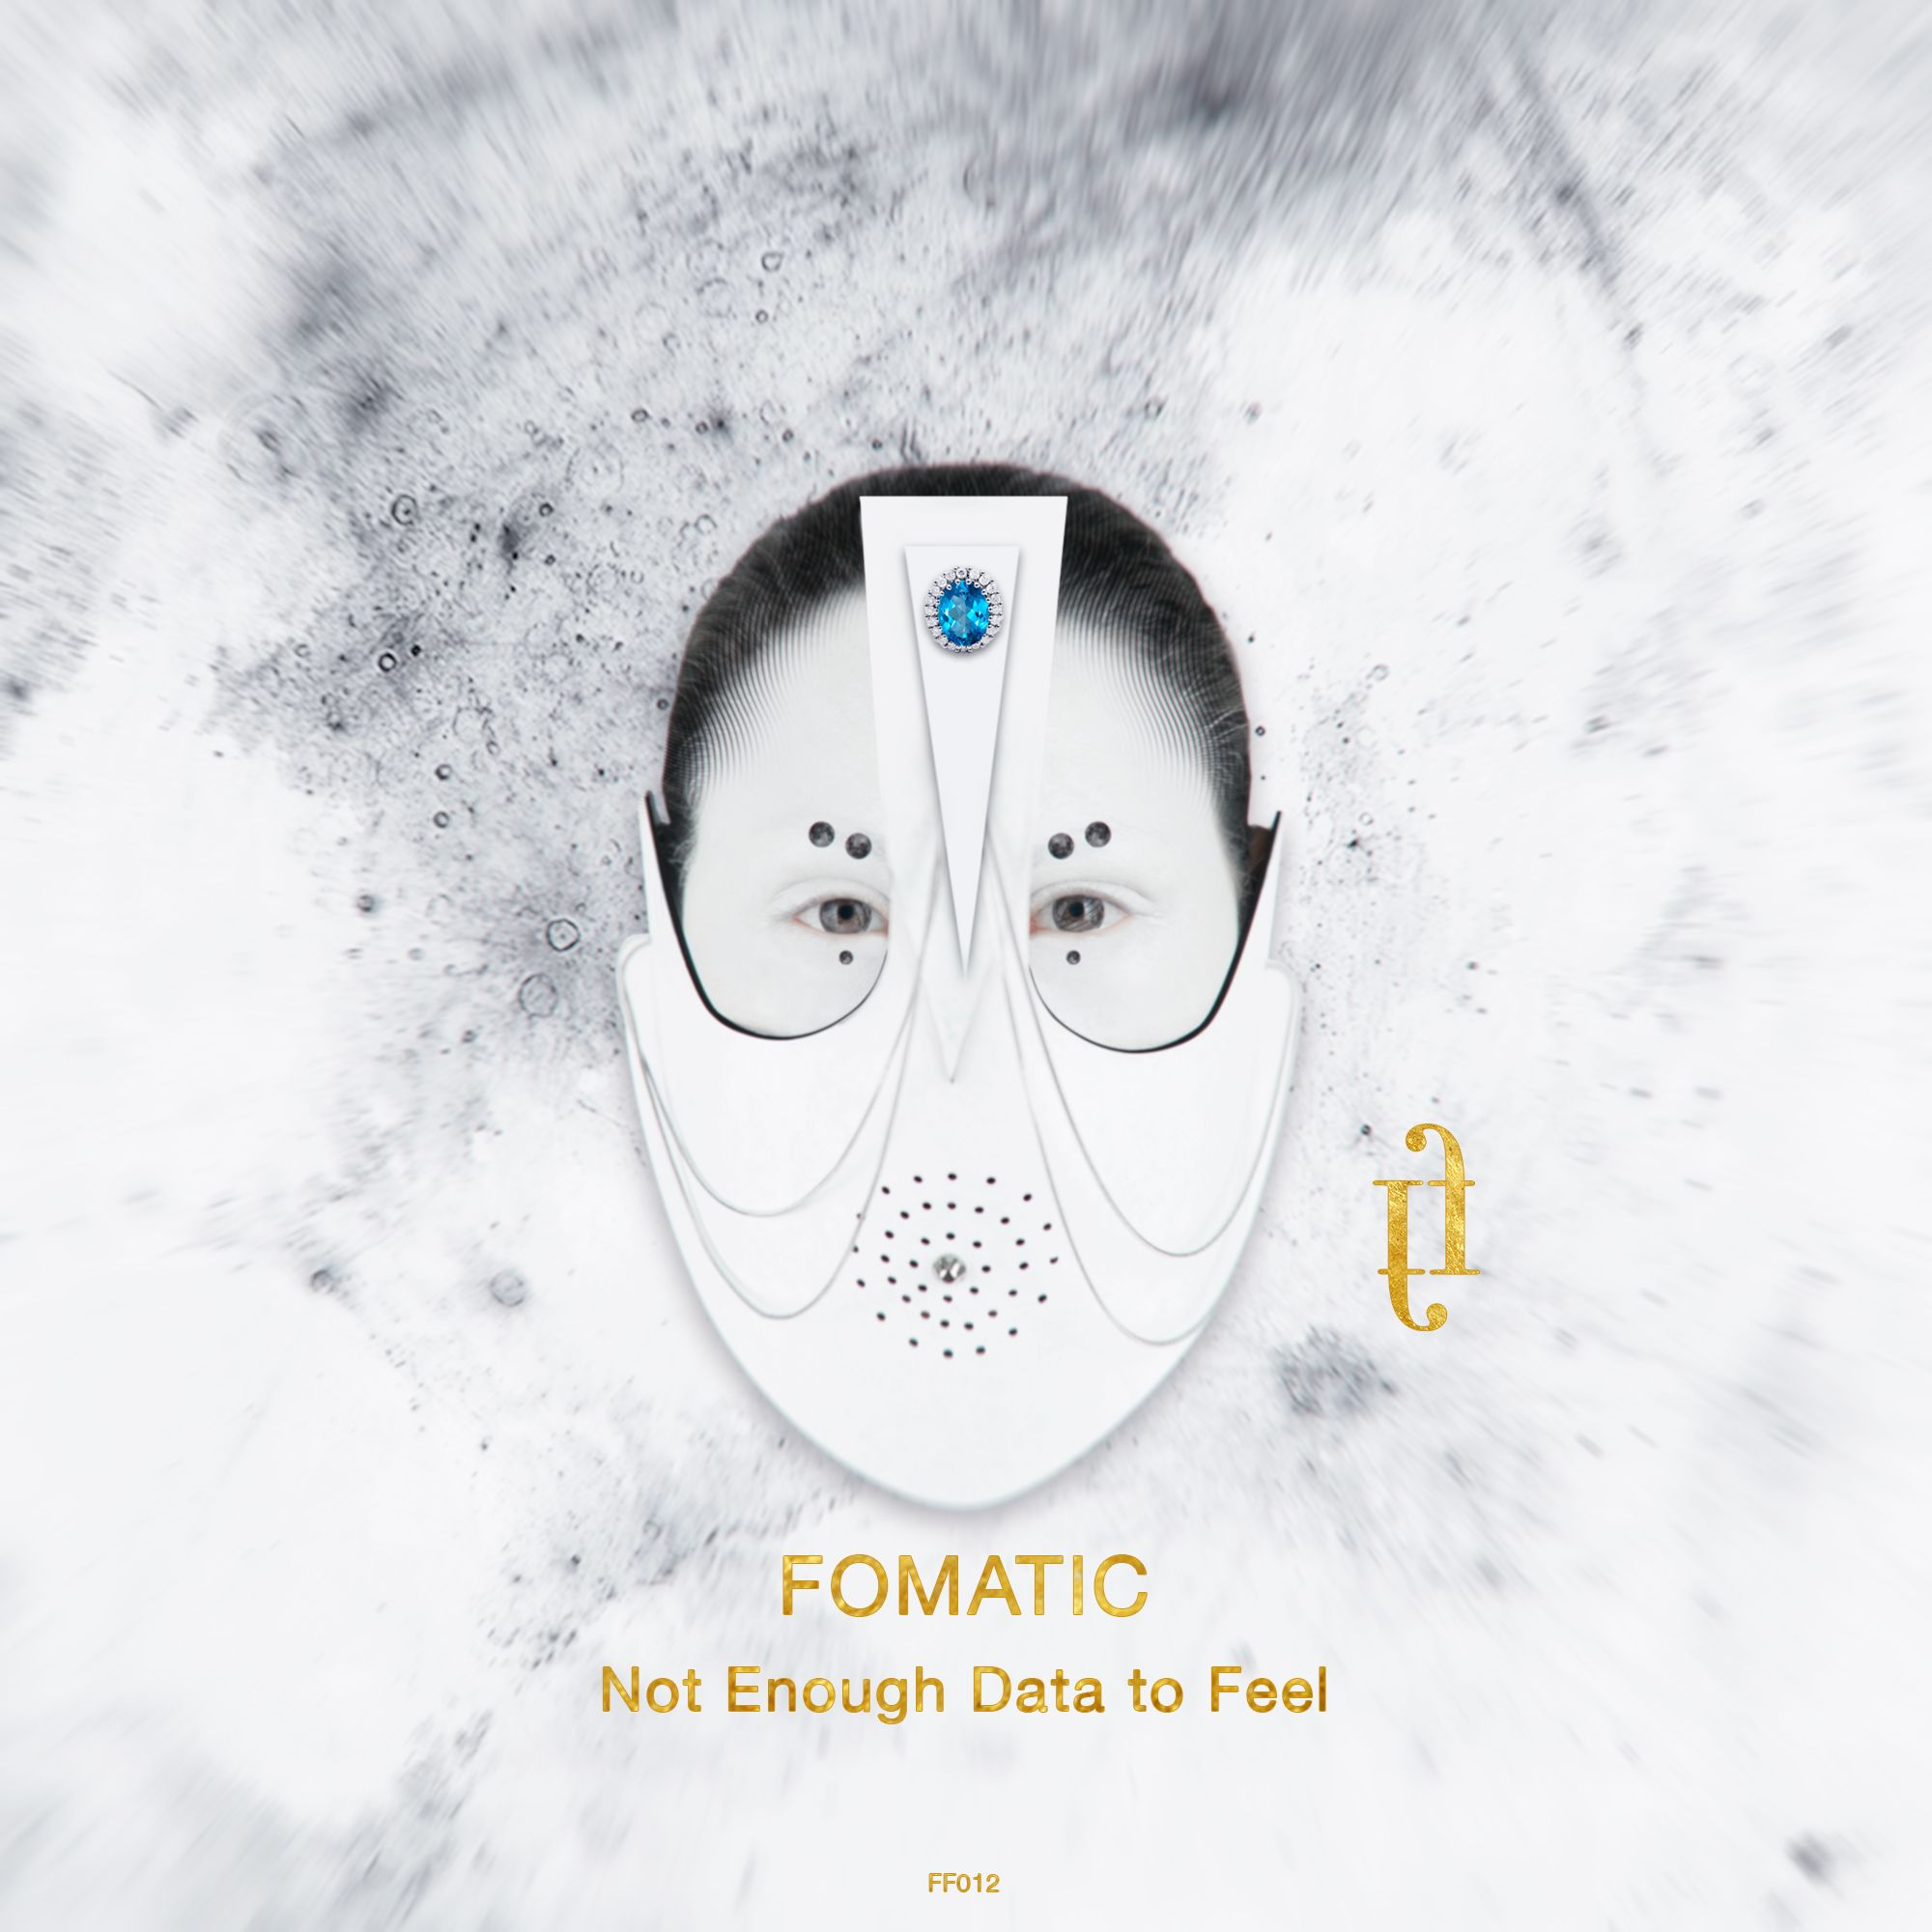 fomatic_-_not_enough_data_to_feel_ep_ff012_coverart.jpg